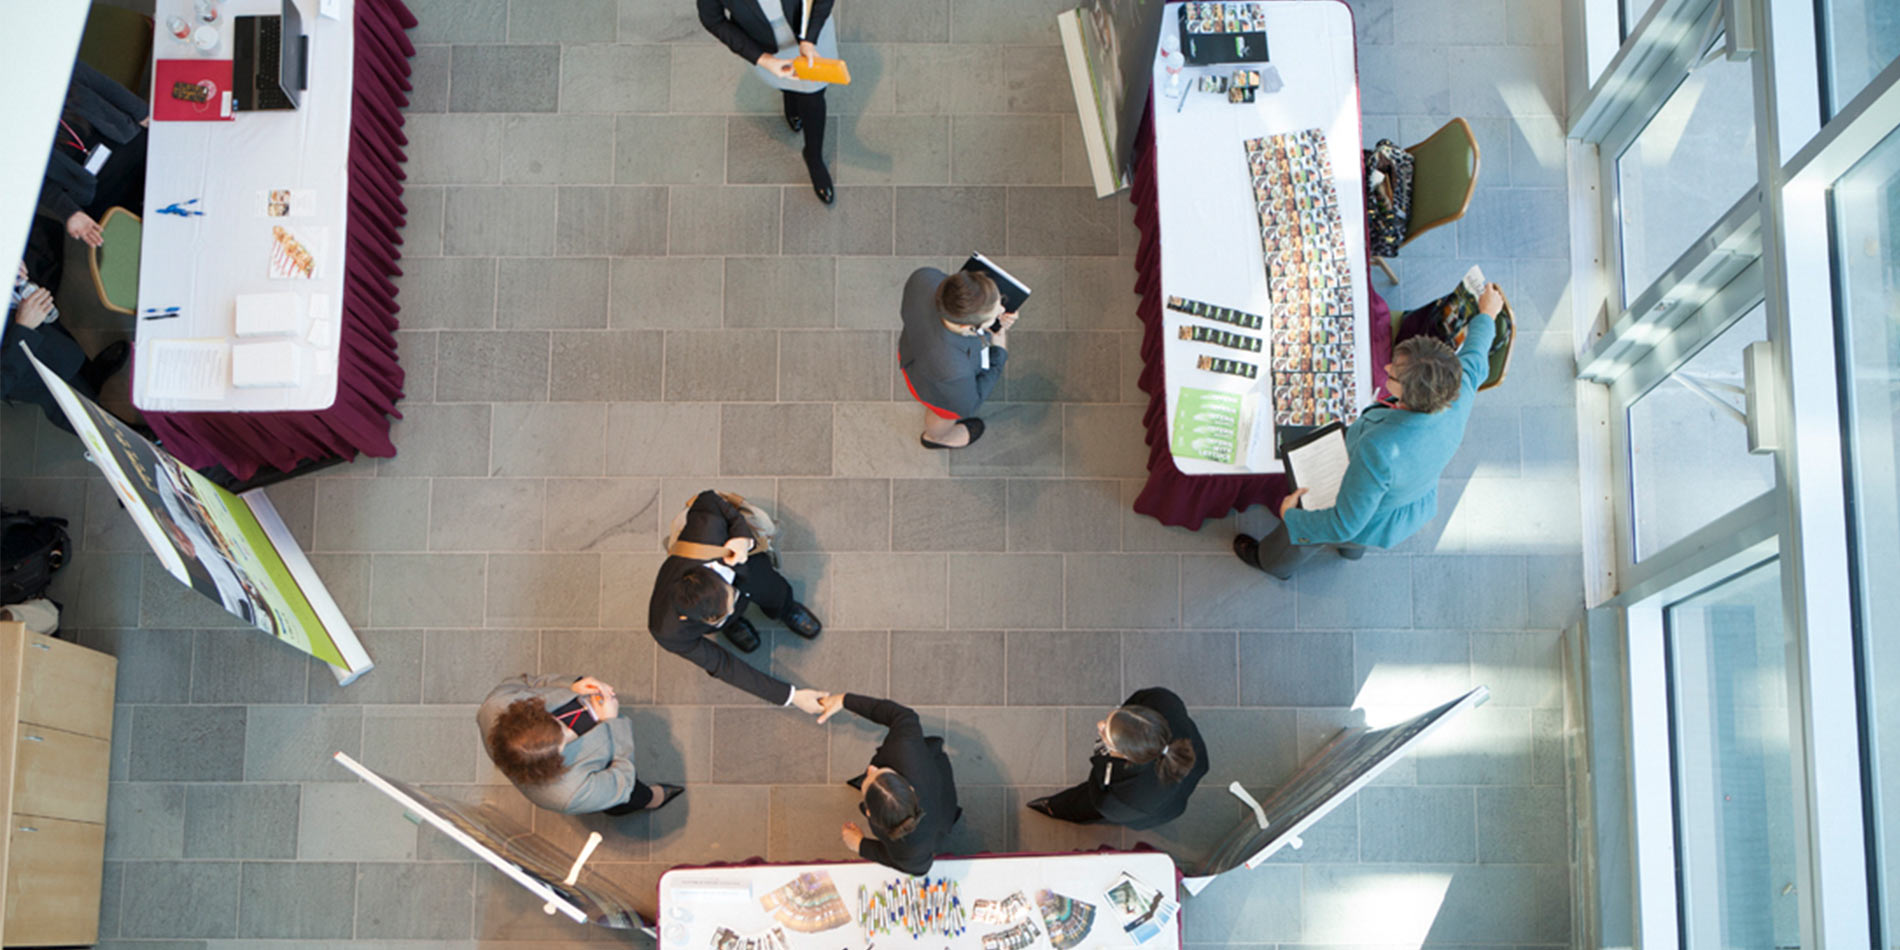 Birdseye view of students in the atrium